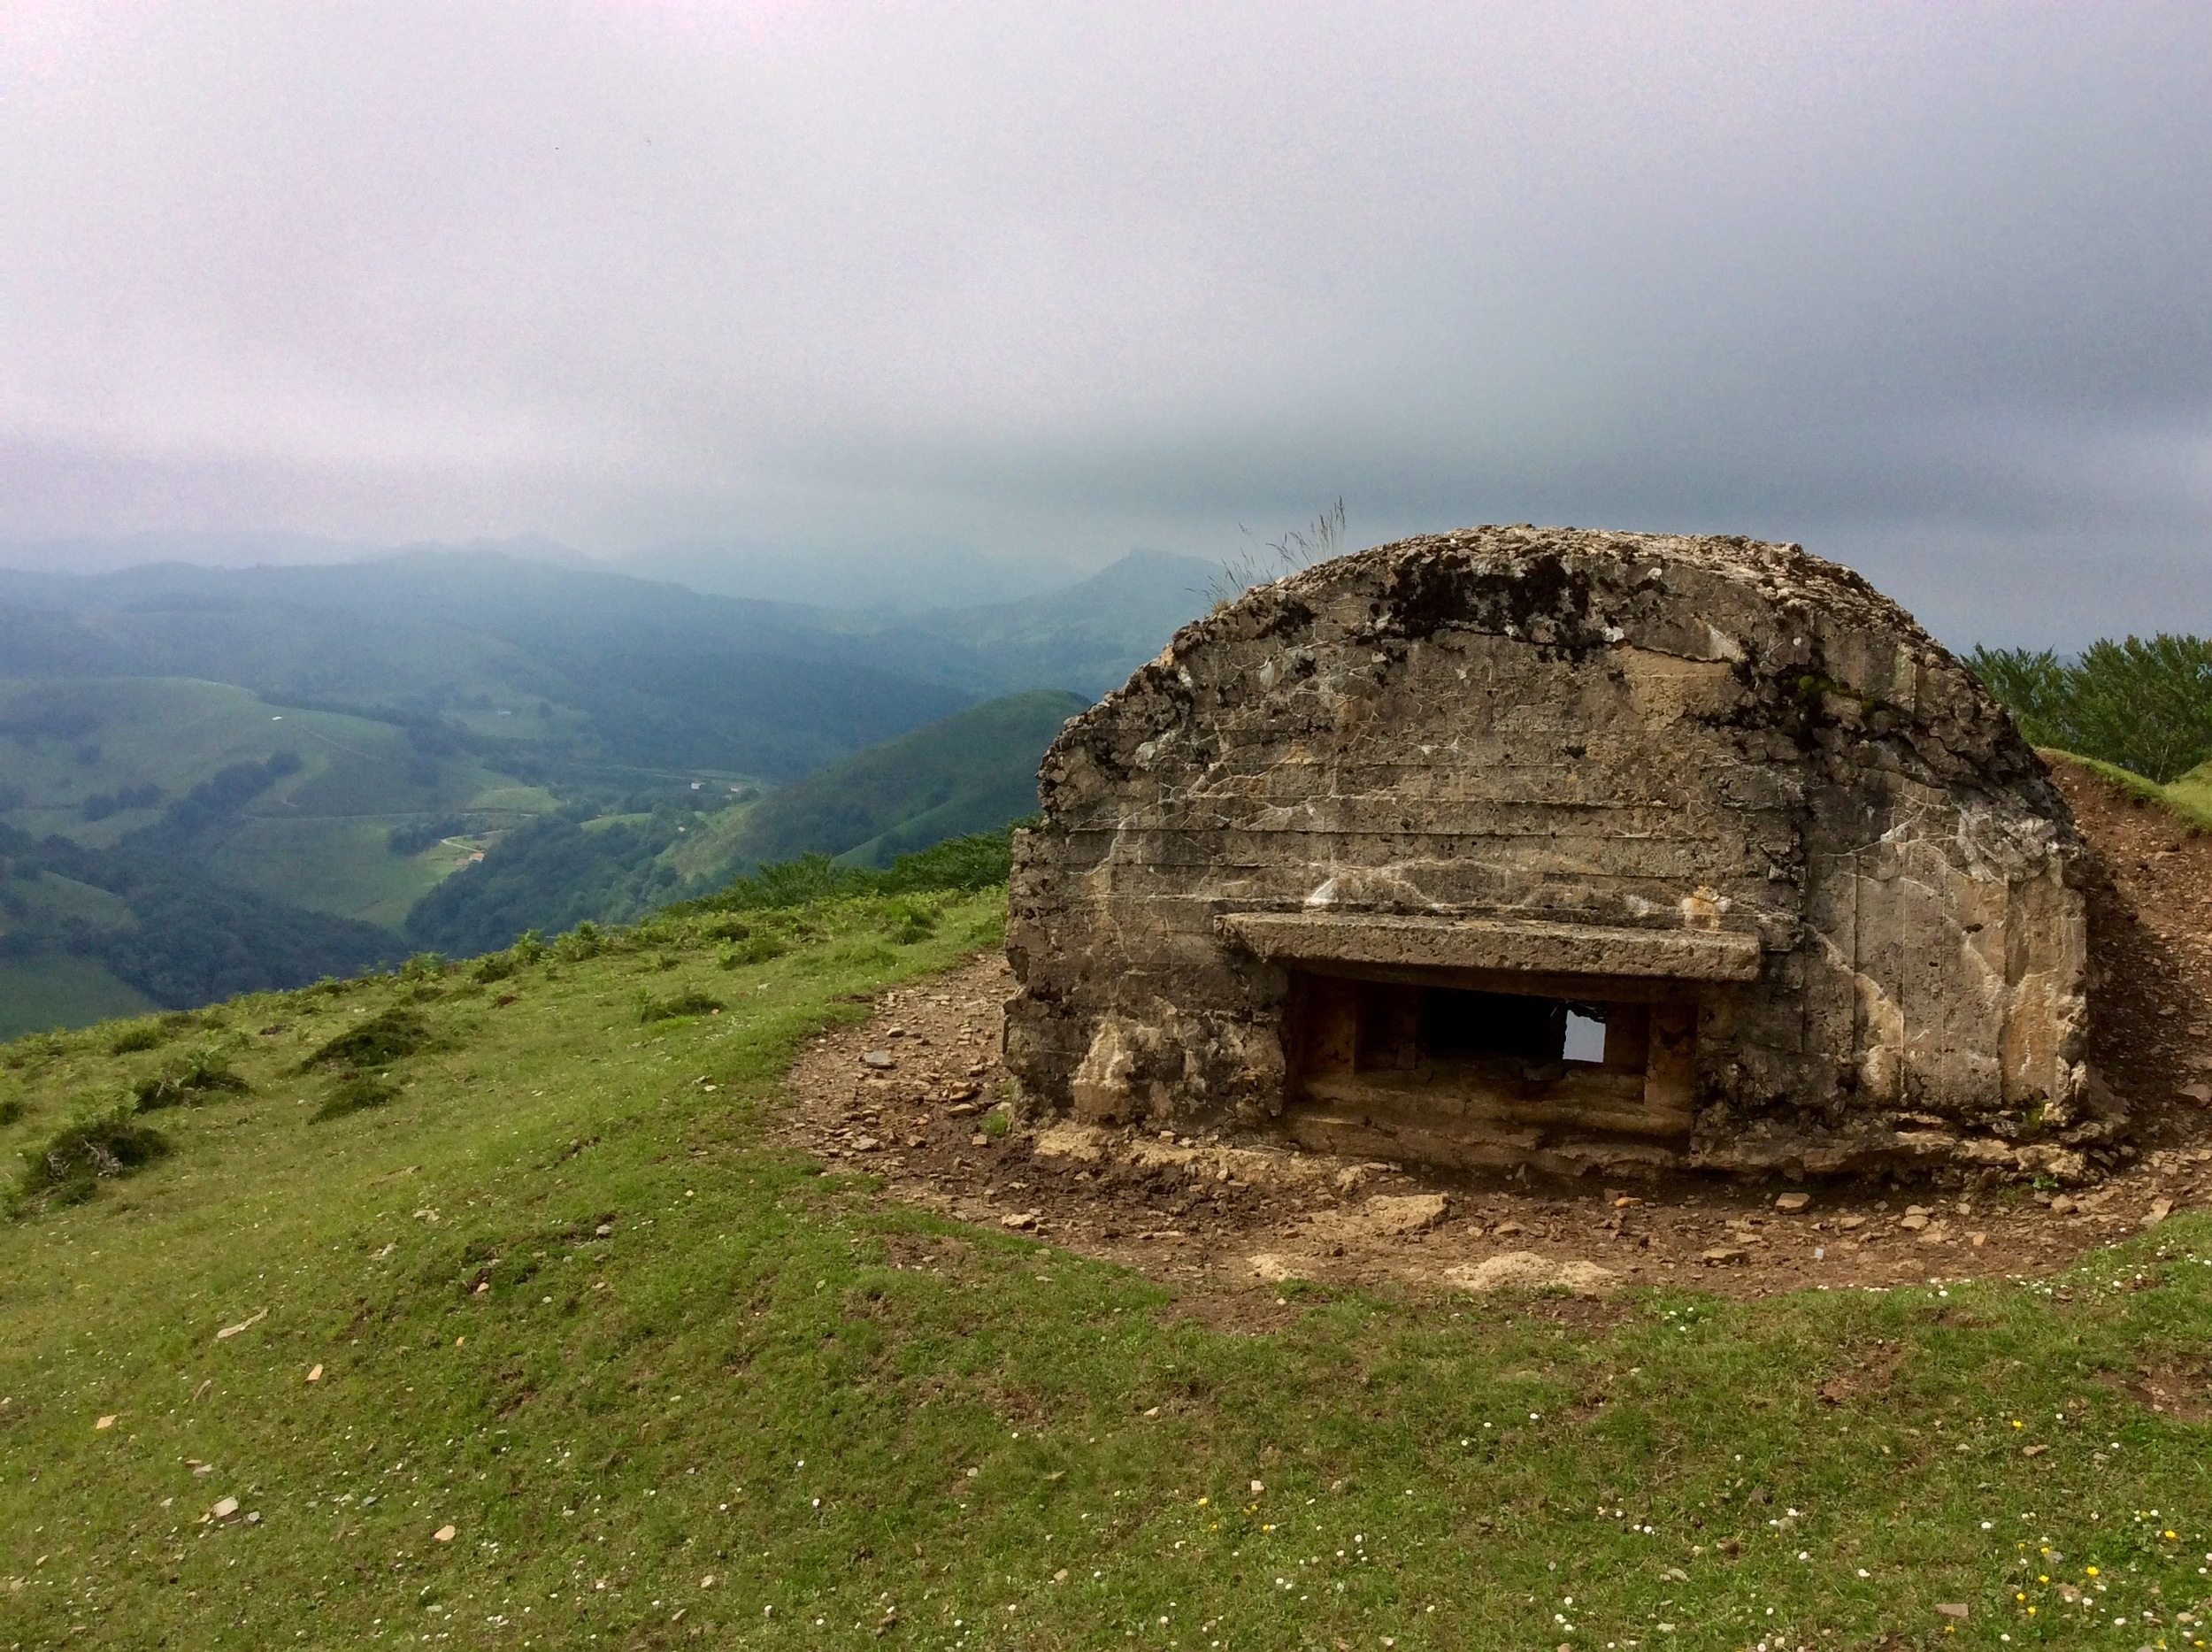 Pillbox from the Spanish Civil War